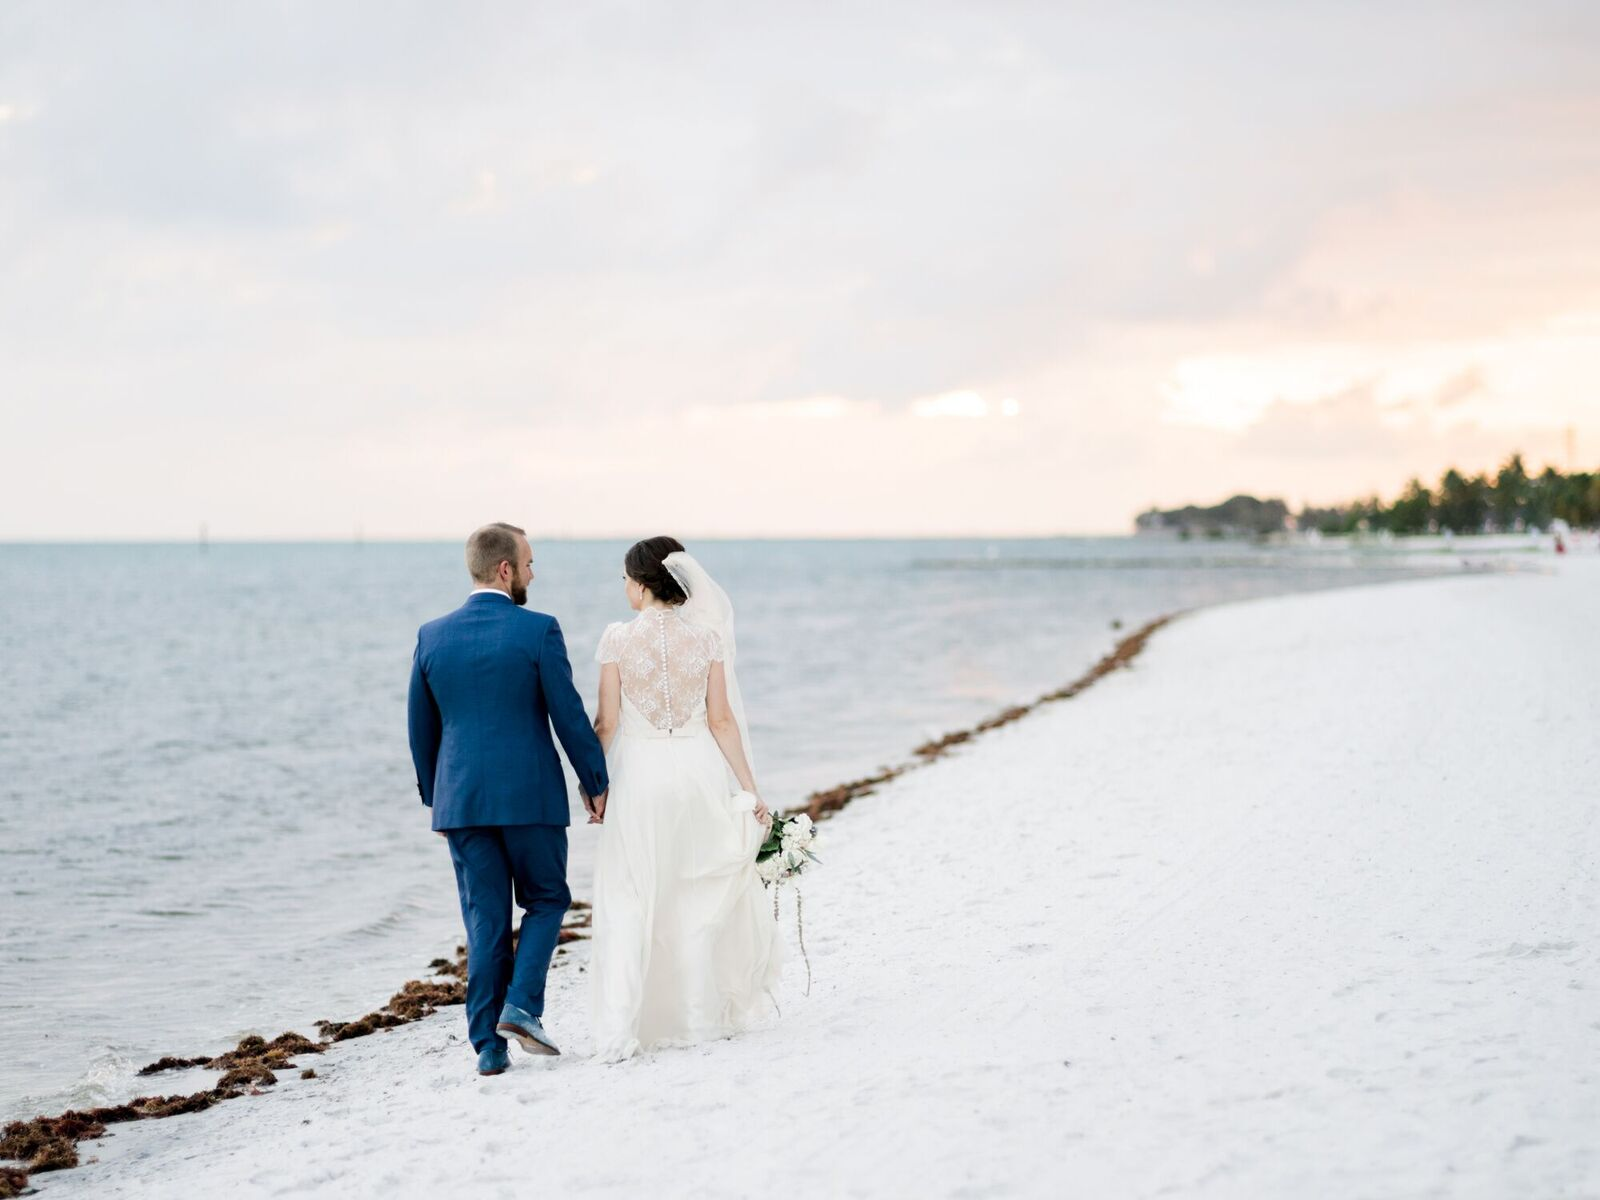 Top 5 Reasons to Have Your Destination Wedding in the Florida Keys